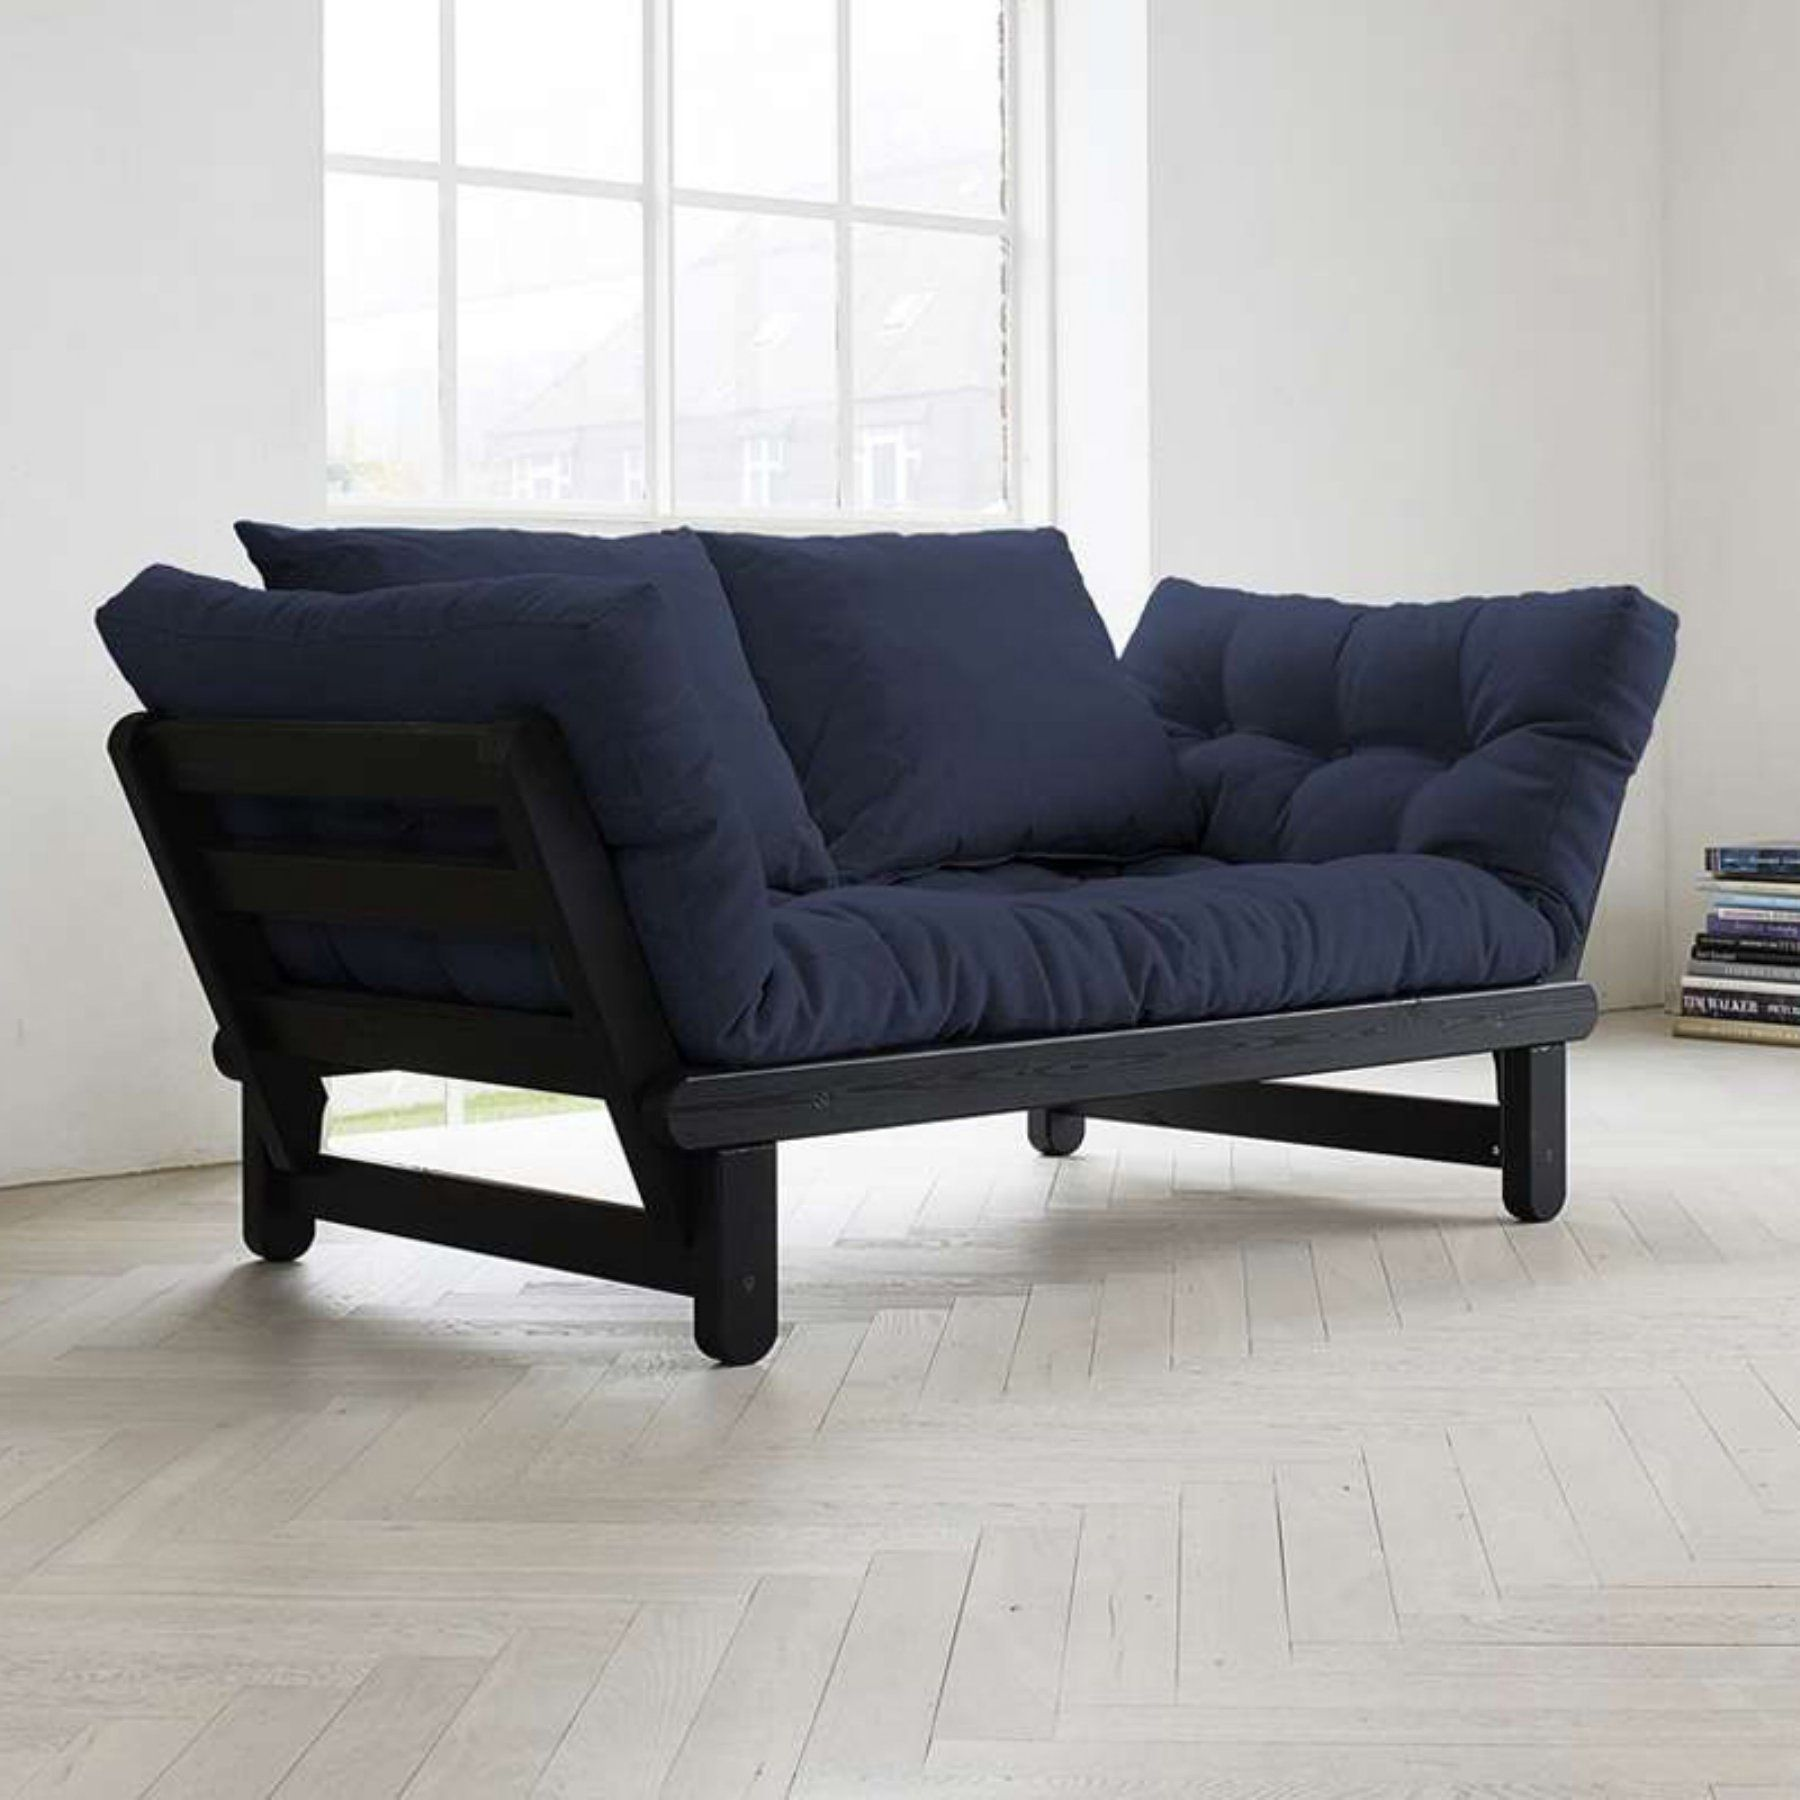 Fresh Futon Beat Black Convertible Sofa Beatbl001